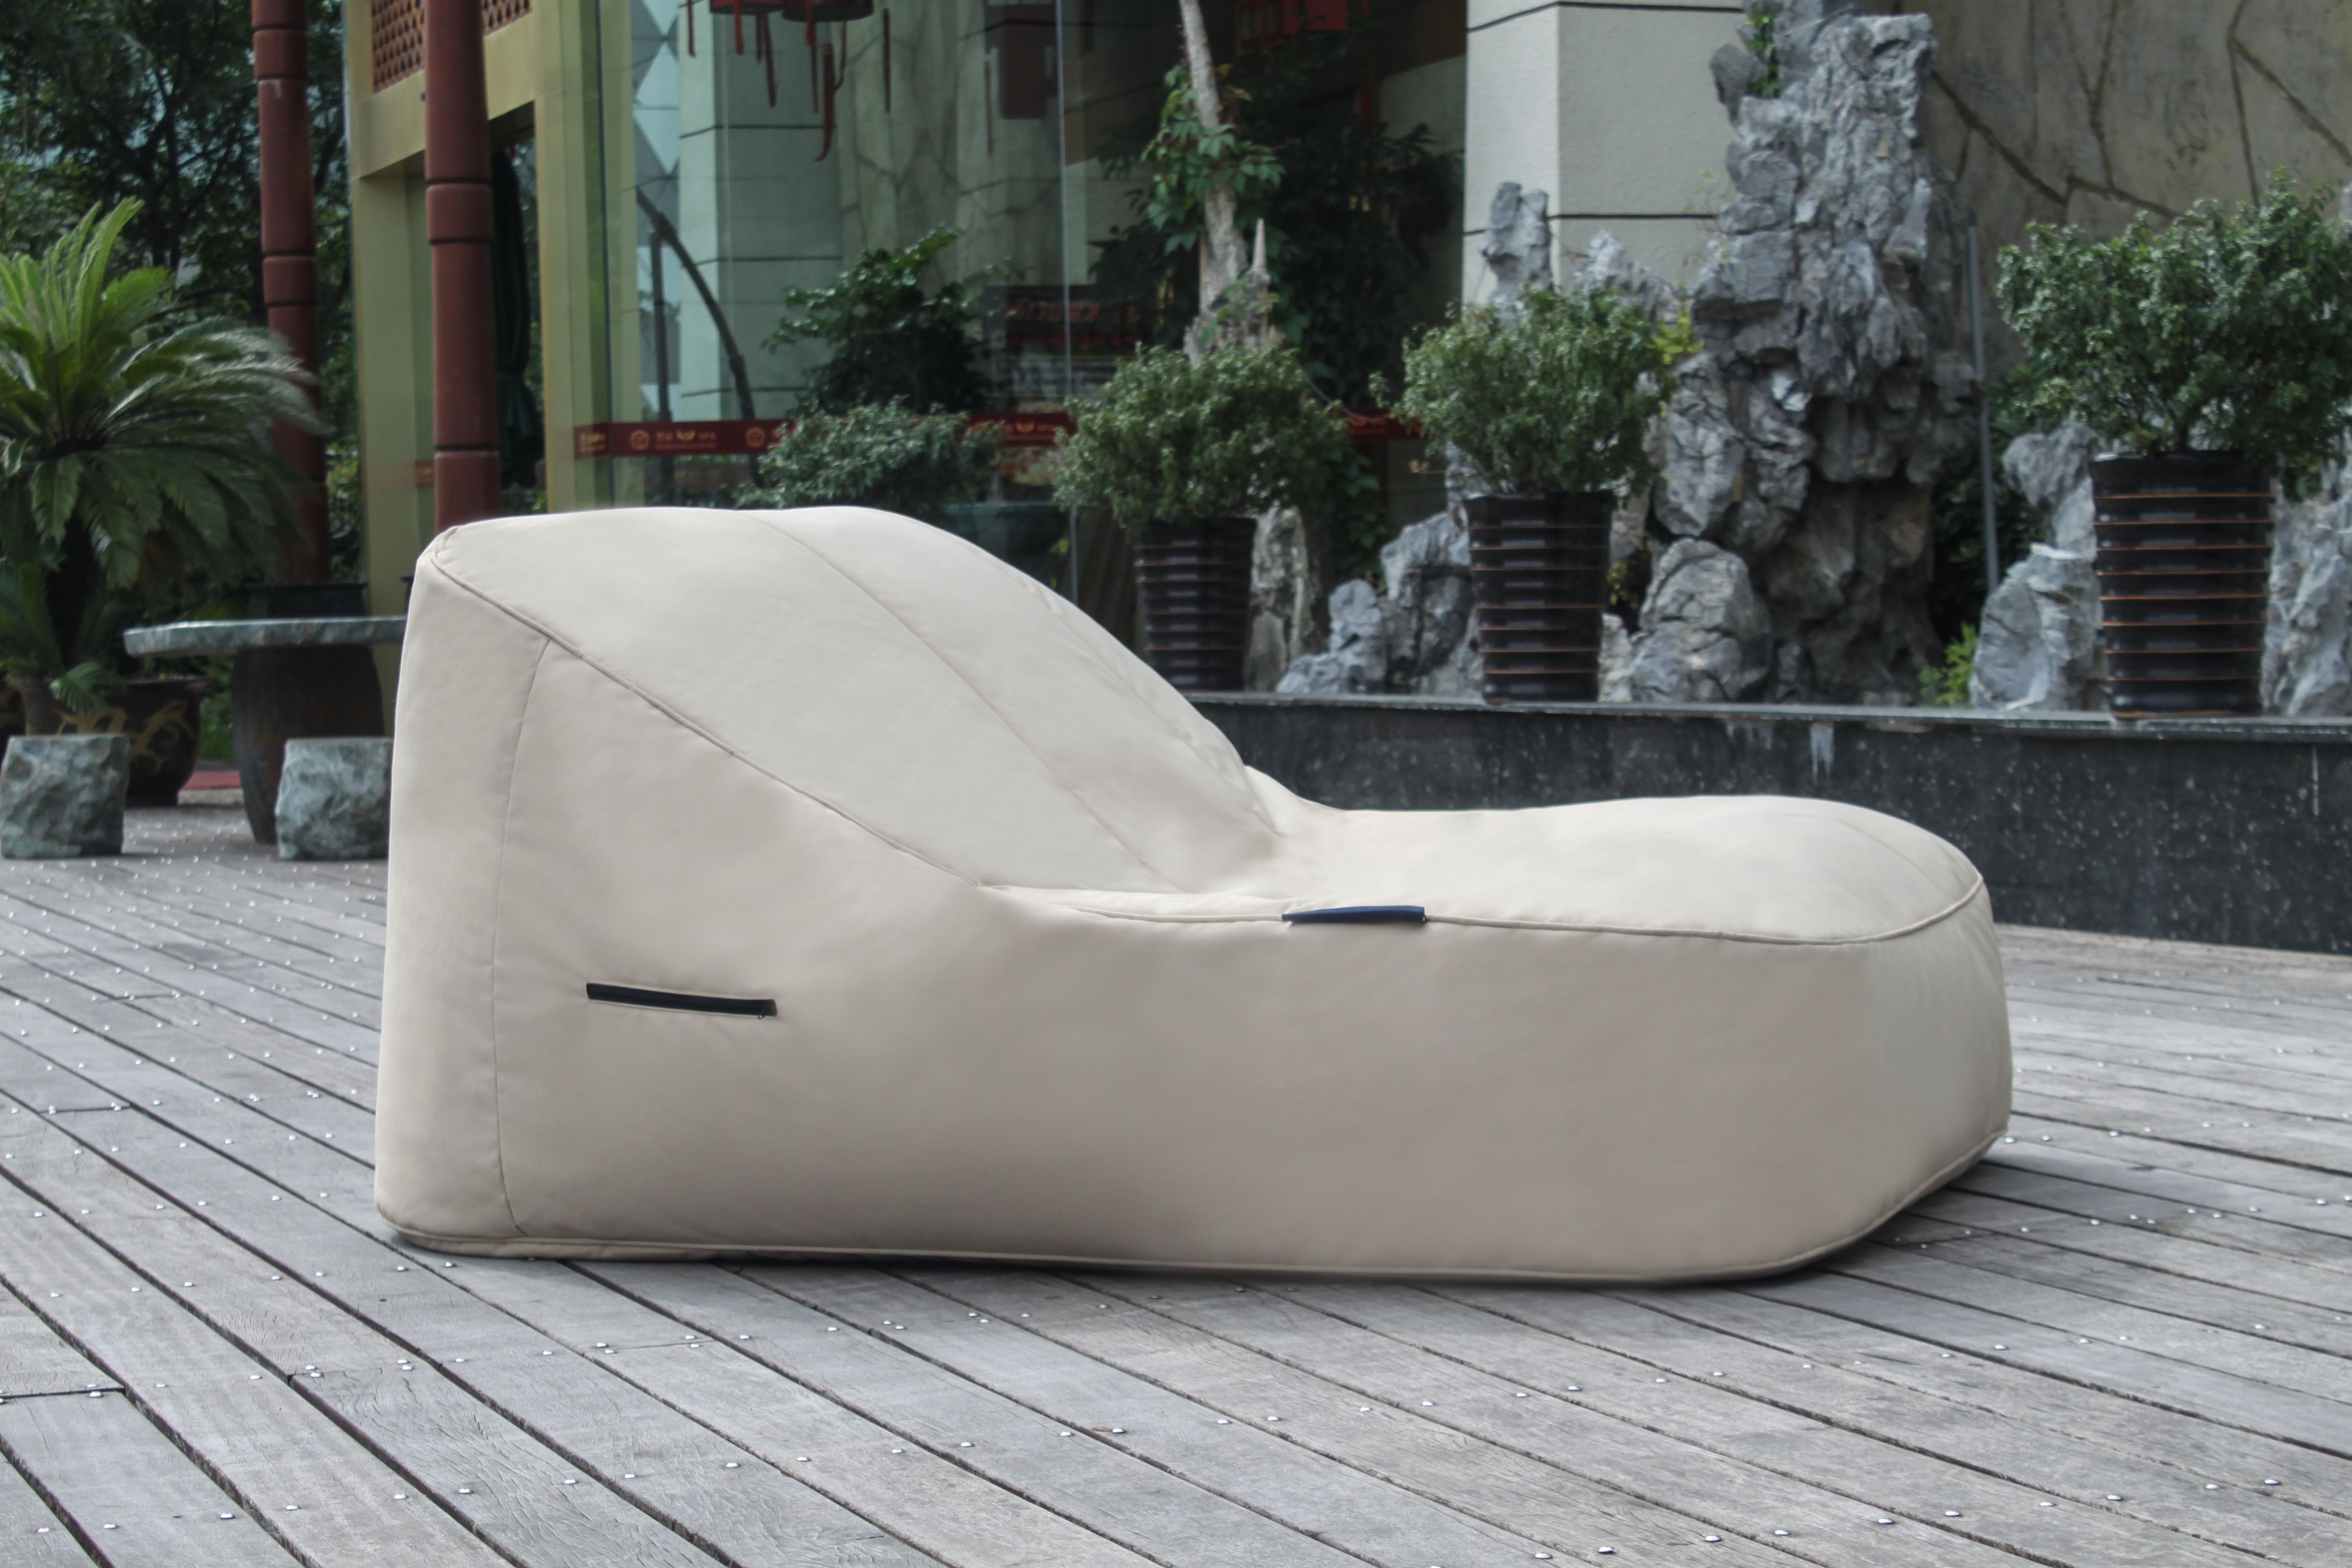 Big joe zip modular armless chair at brookstone buy now - As Seen In Boutique Resorts In Thailand The Satellite Twin Outdoor Bean Bags